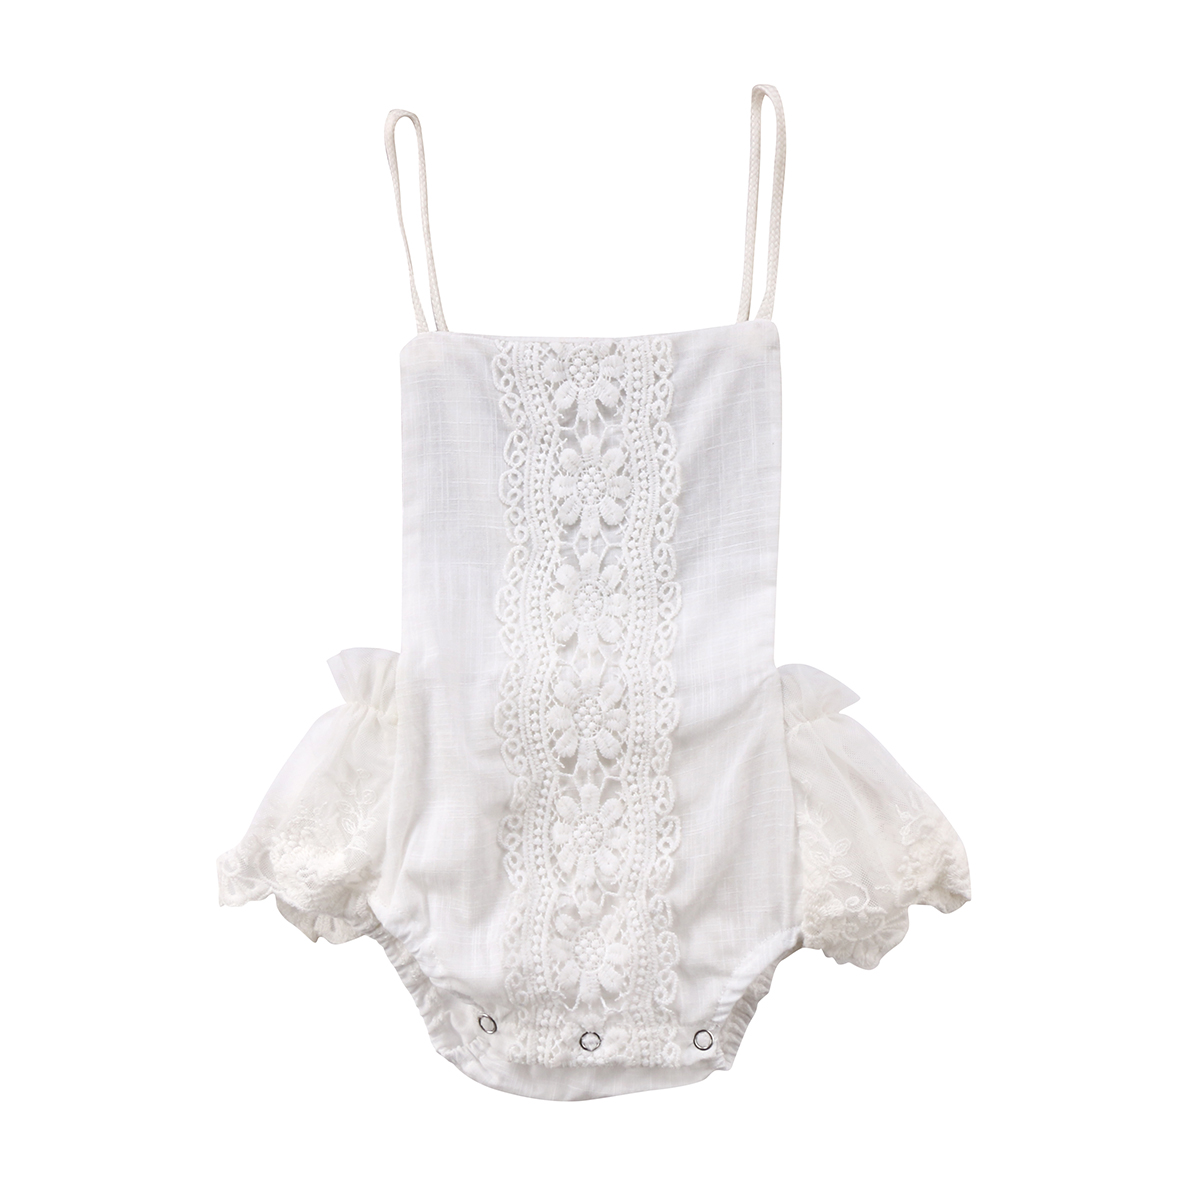 Pudcoco Kid Baby Girl Clothes Princess White Lace Floral Romper Halter Jumpsuit Sunsuit Easter Costume baby girl Outfit 0-24MPudcoco Kid Baby Girl Clothes Princess White Lace Floral Romper Halter Jumpsuit Sunsuit Easter Costume baby girl Outfit 0-24M